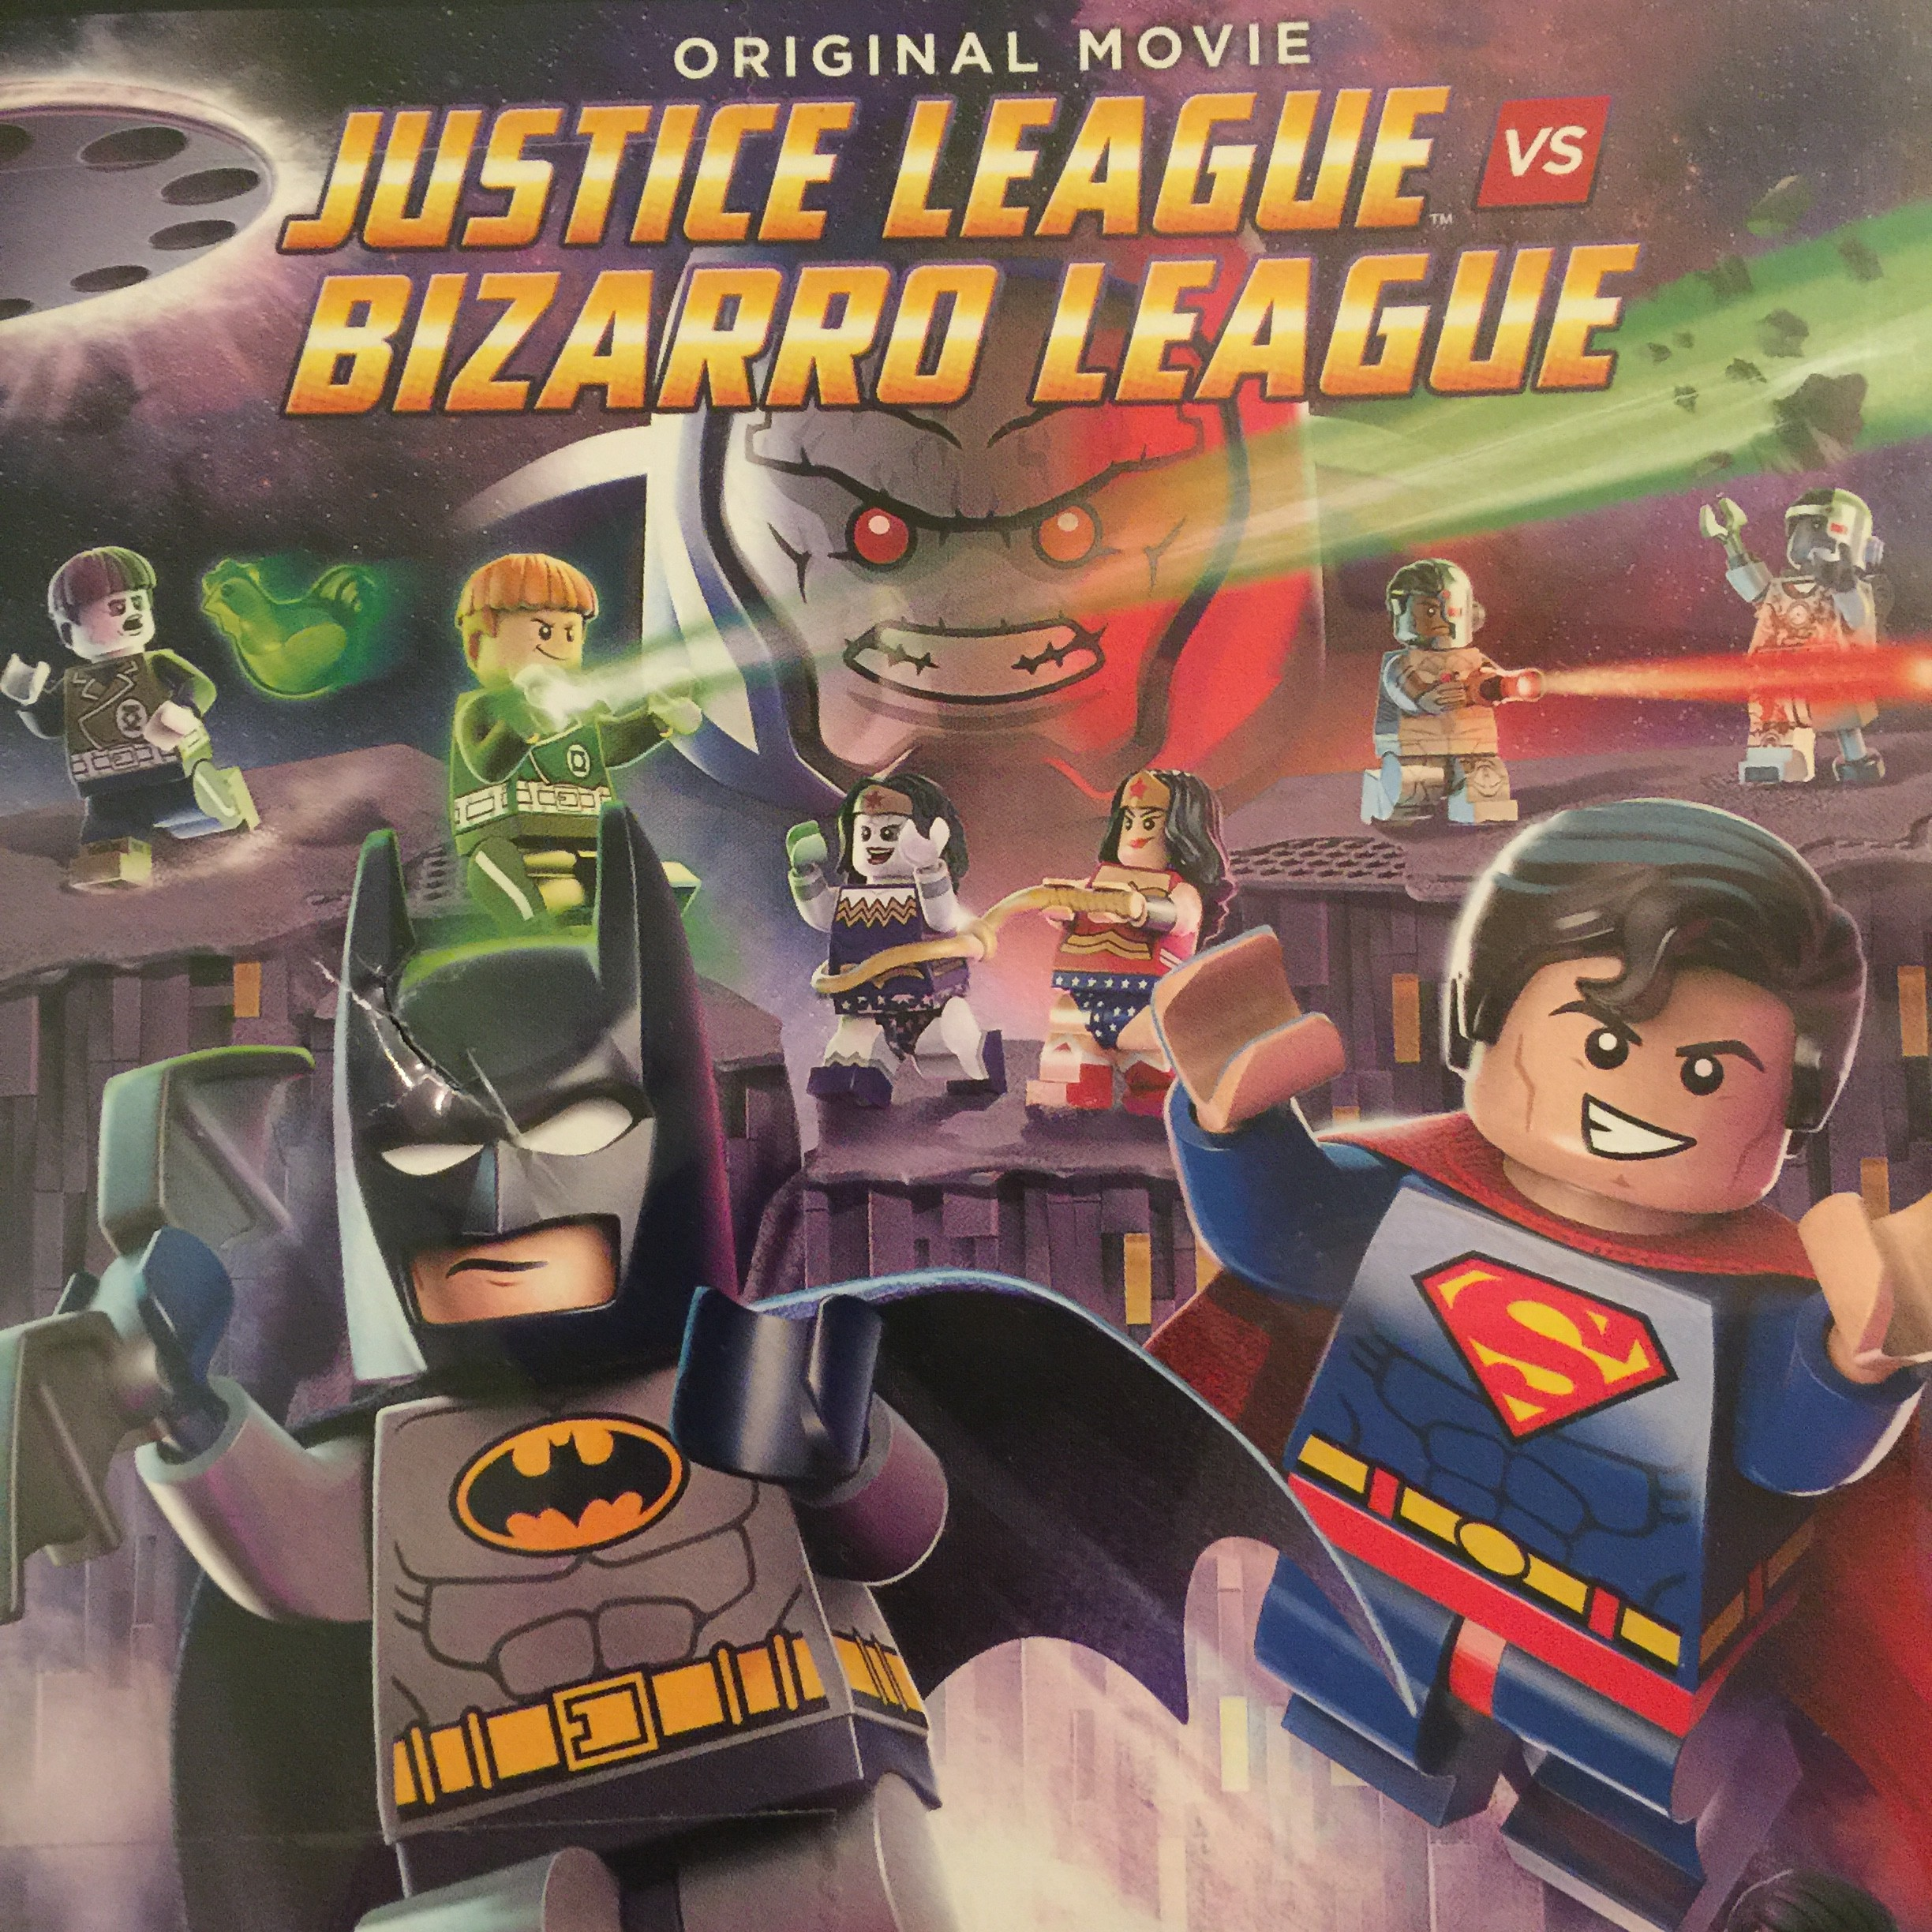 Justice League vs Bizarro League